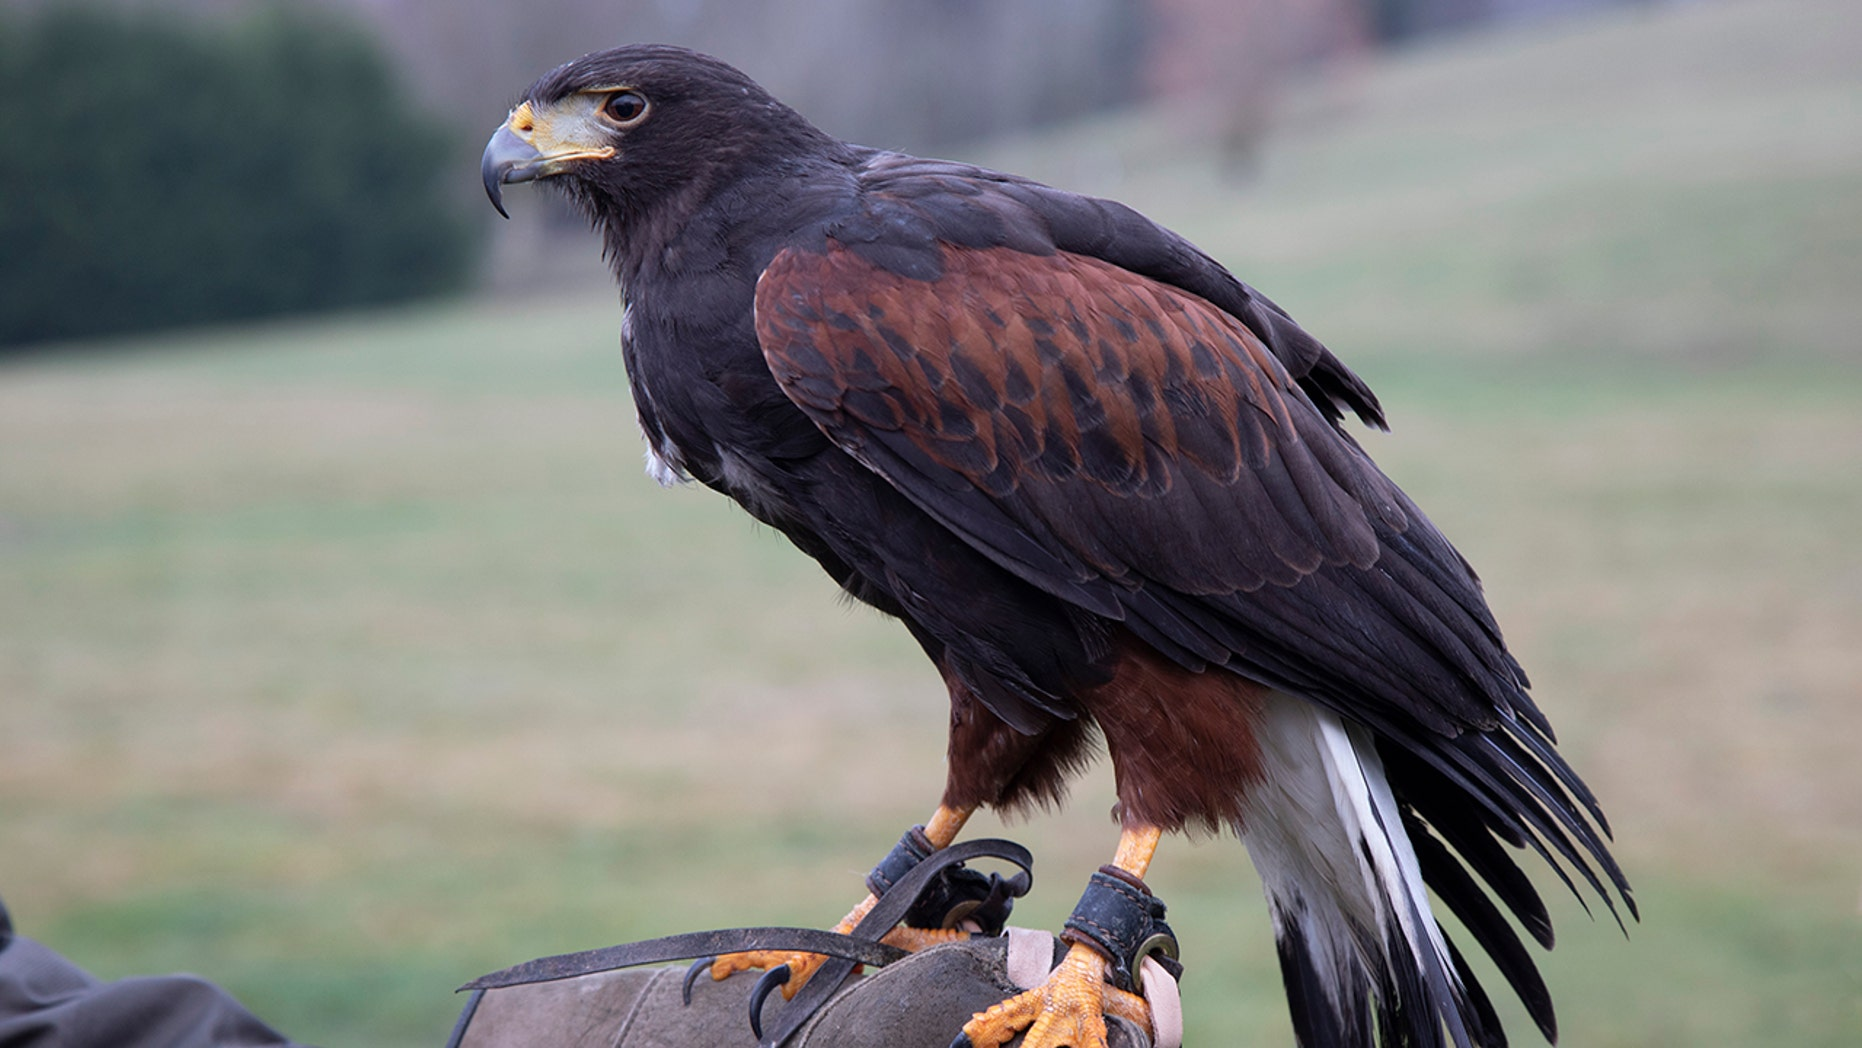 A Harris hawk, like the one pictured, was stolen near Heathrow Airport on Tuesday evening.